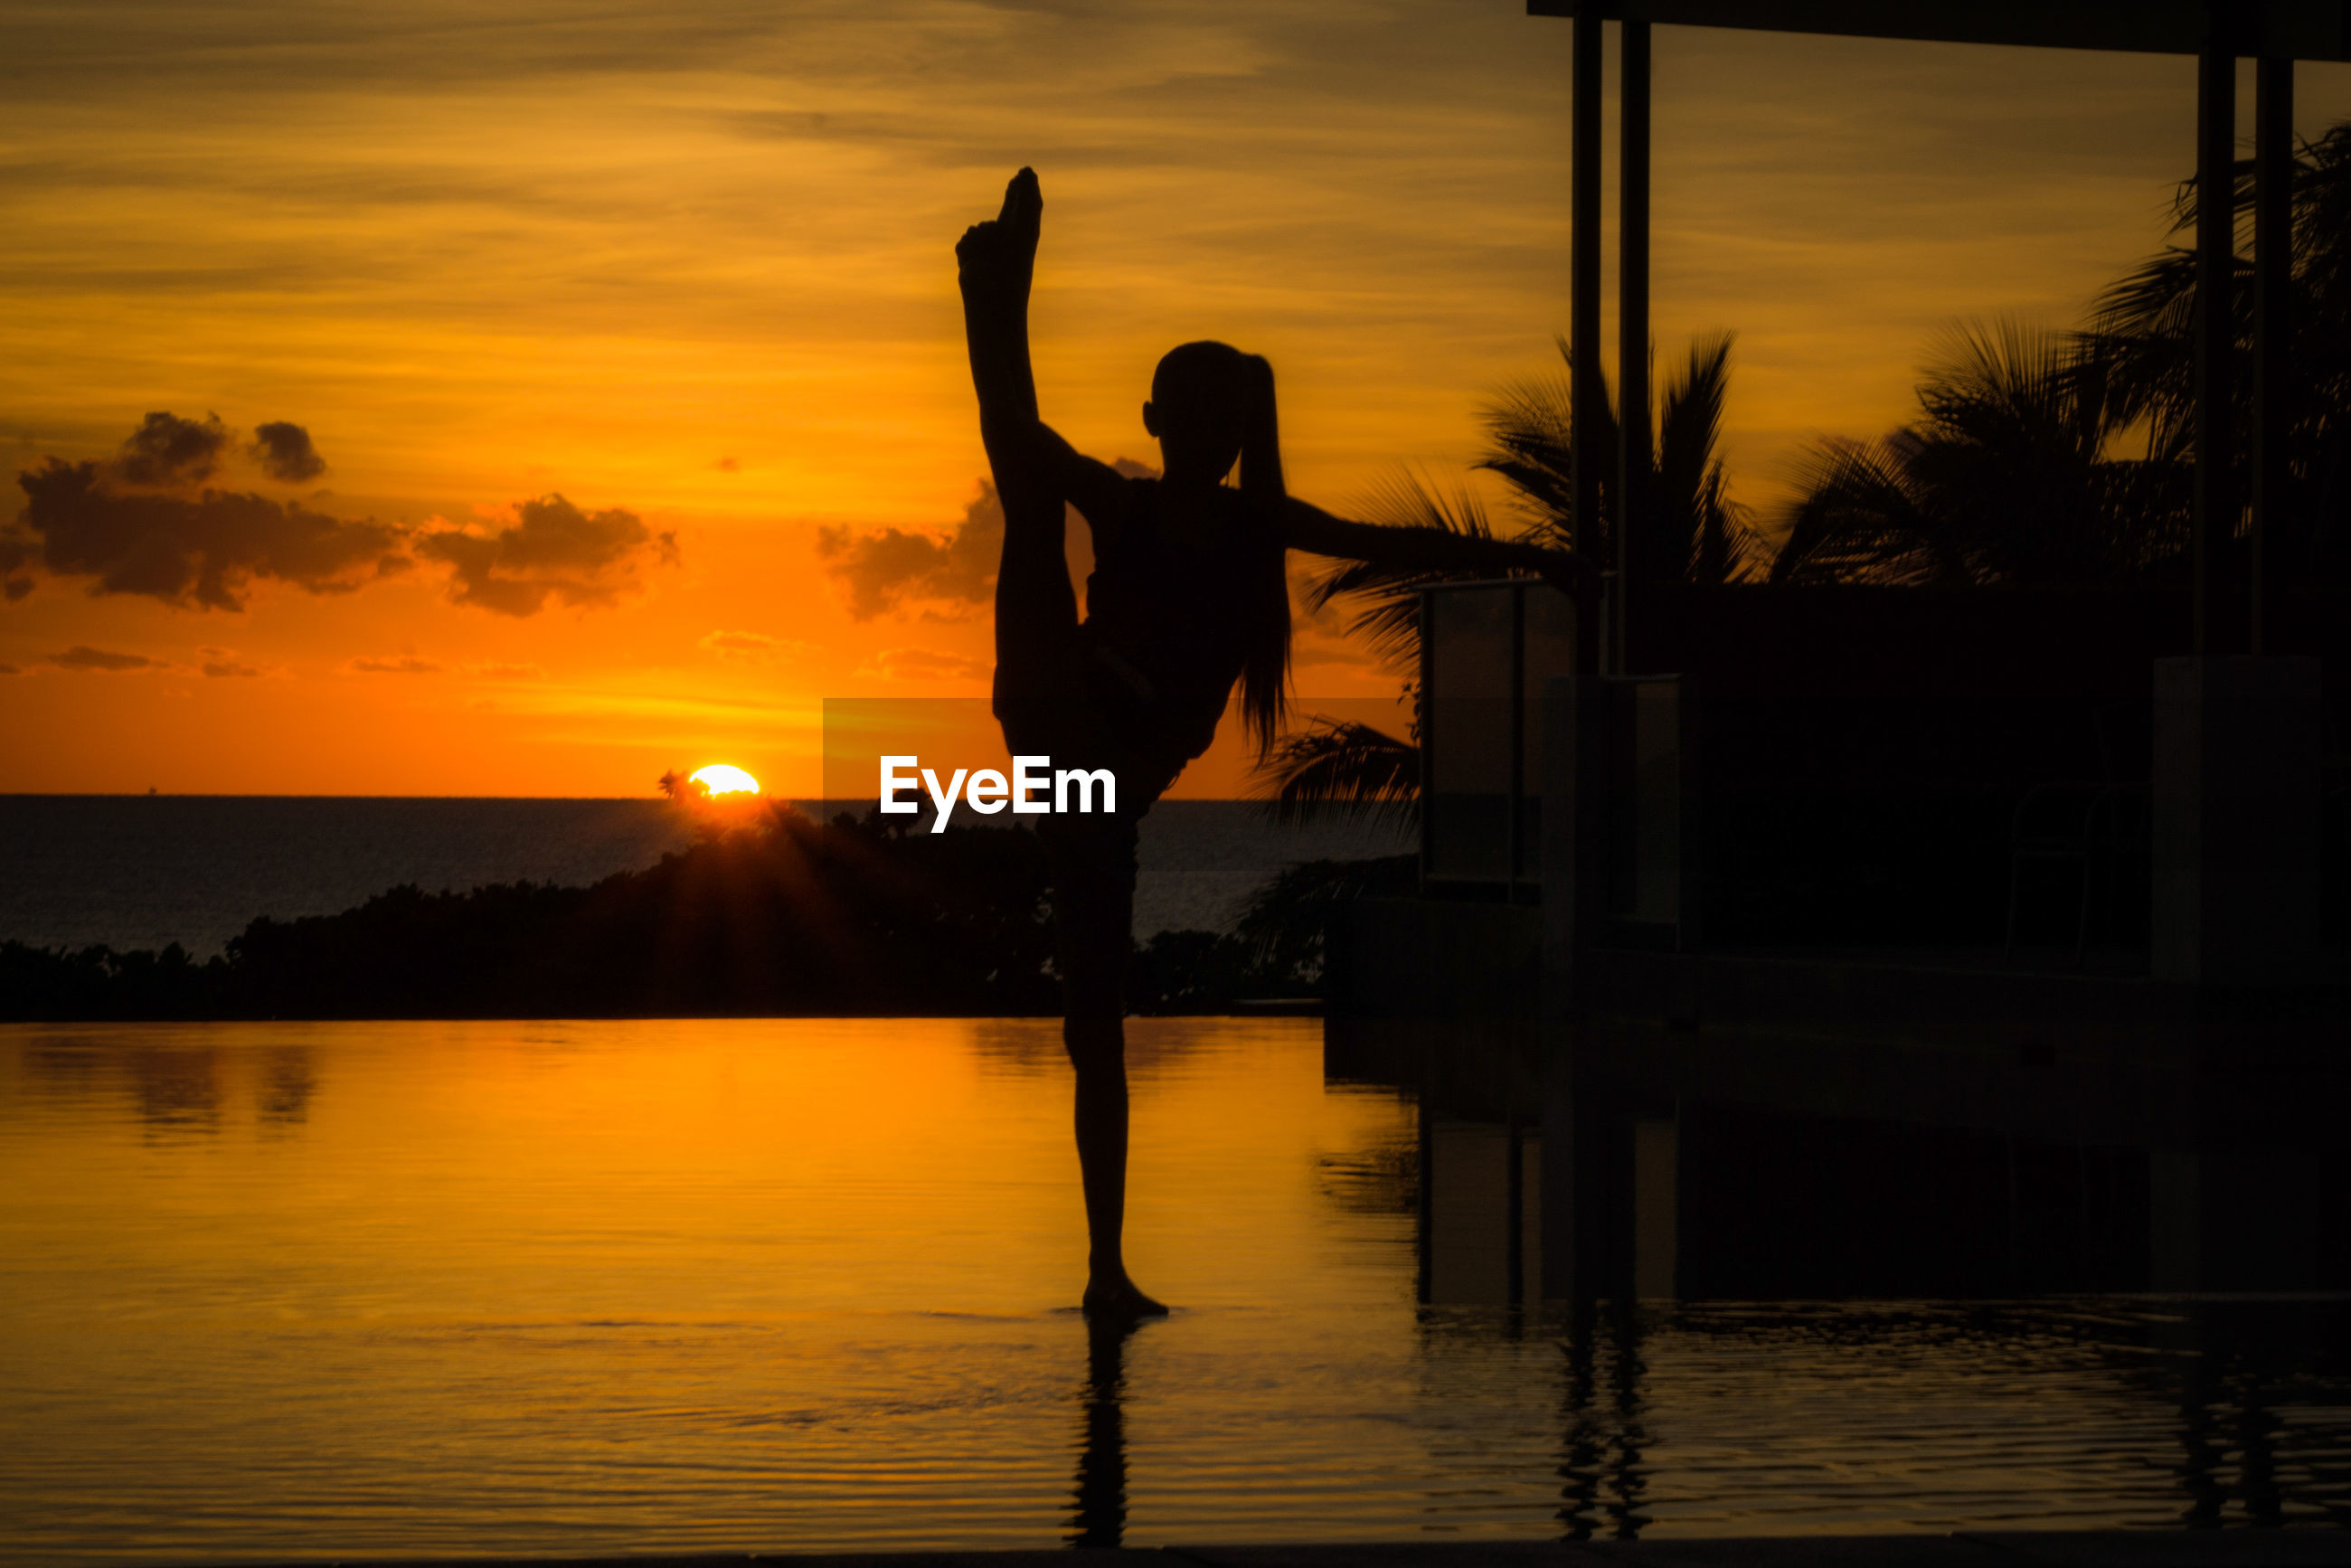 SILHOUETTE WOMAN WITH ARMS RAISED AT SUNSET